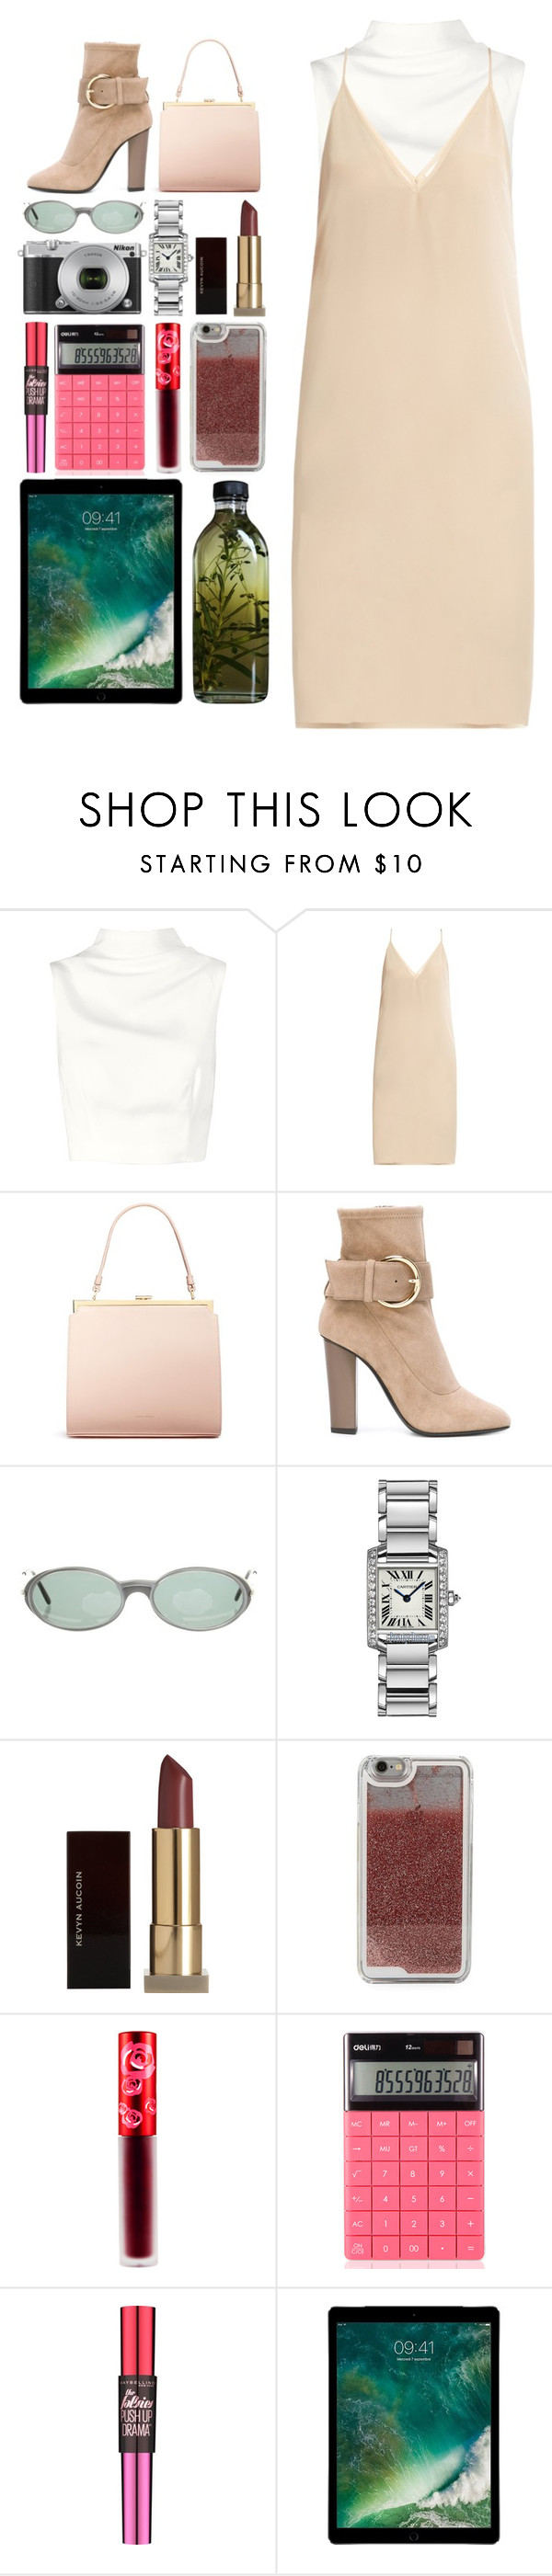 """""""5.177"""" by katrina-yeow ❤ liked on Polyvore featuring Keepsake the Label, Raey, Mansur Gavriel, Giuseppe Zanotti, Cartier, Nikon, Kevyn Aucoin, LMNT, Lime Crime and Maybelline"""